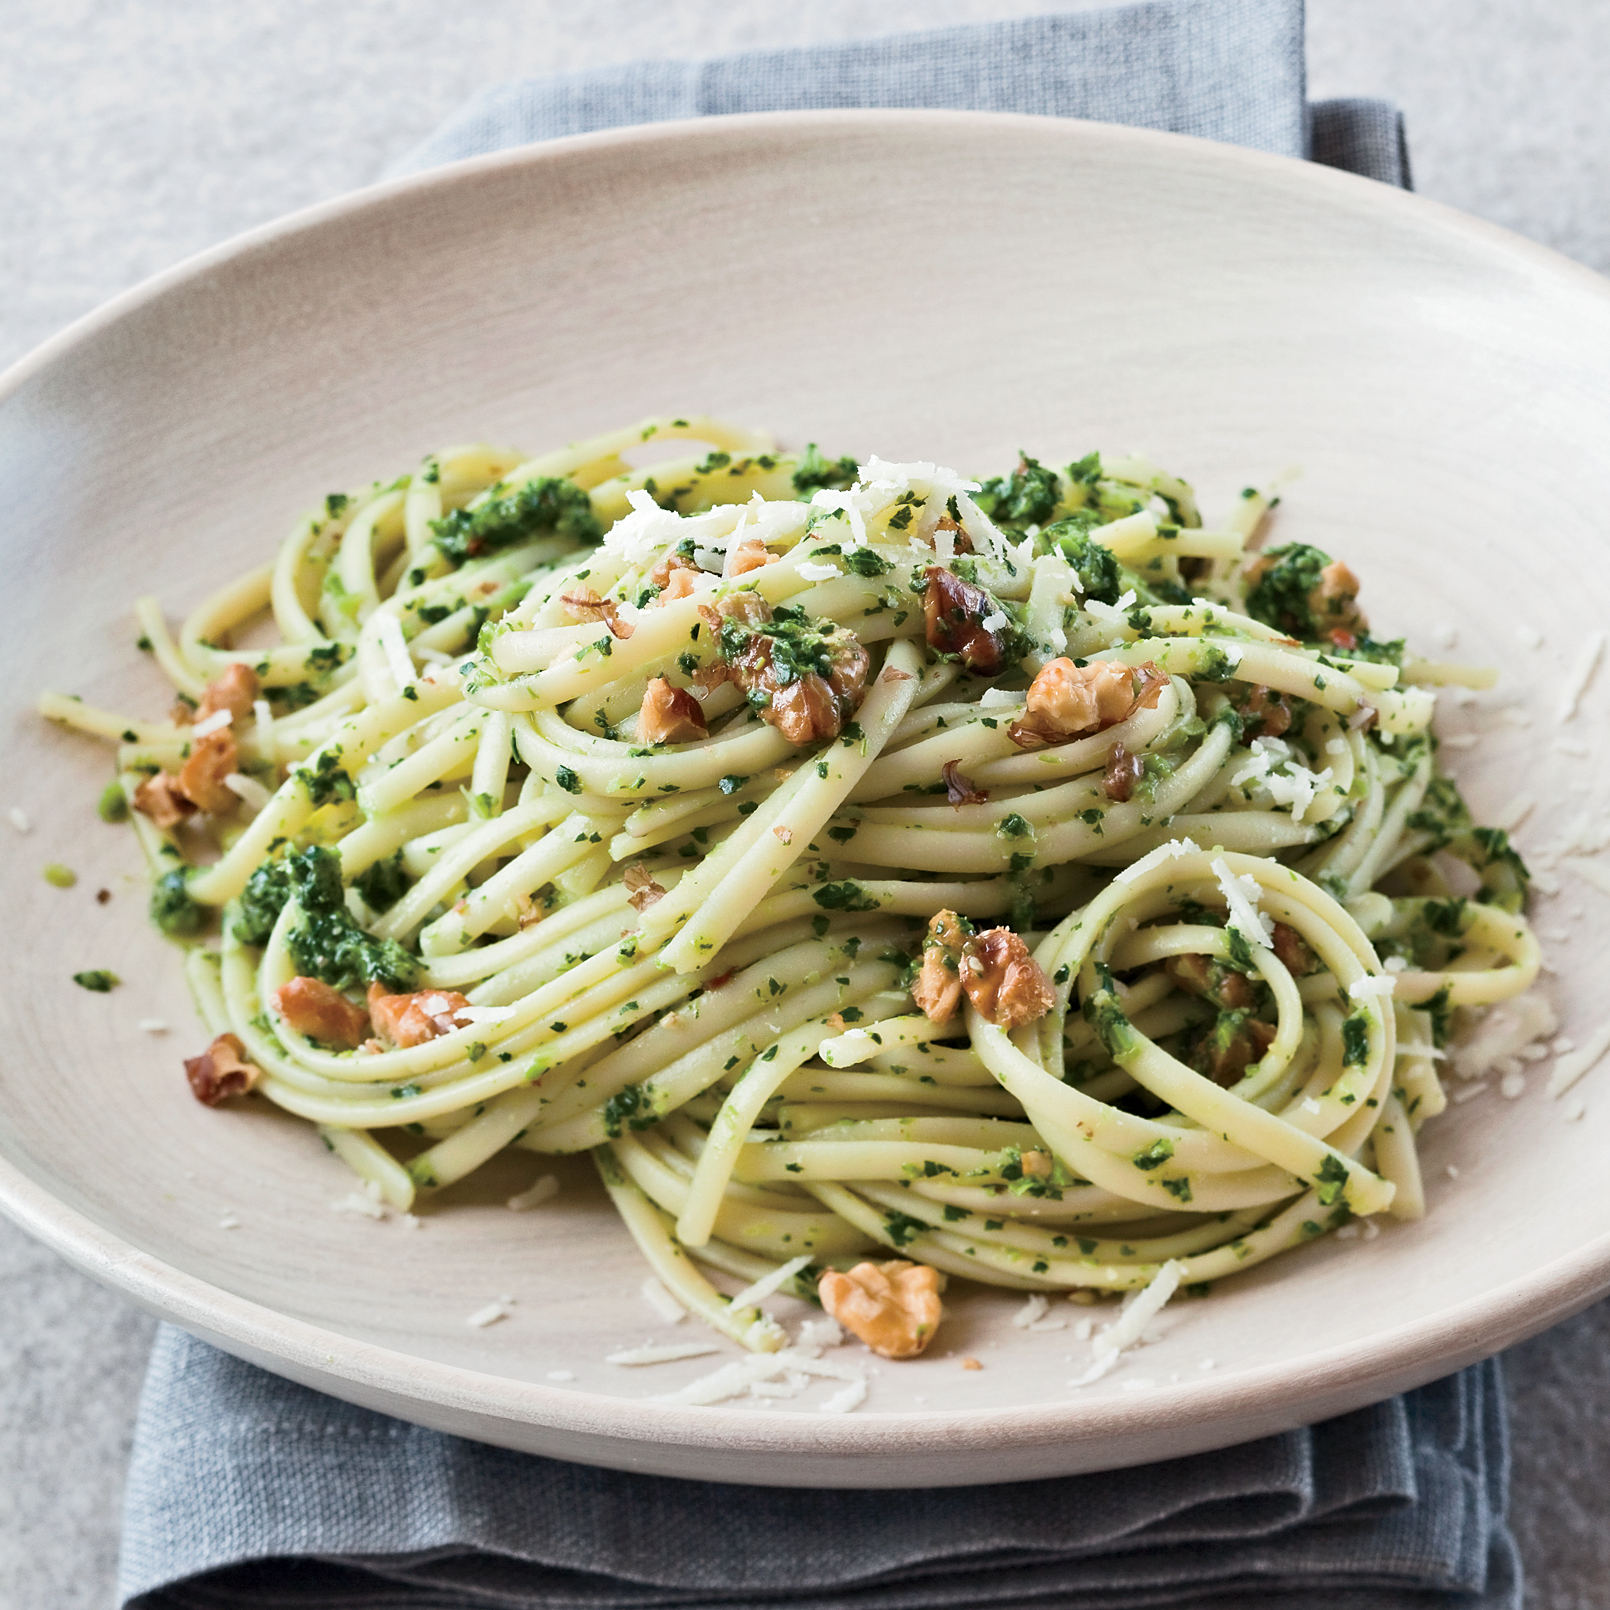 201001-r-linguine-with-broccoli-rabe.jpg